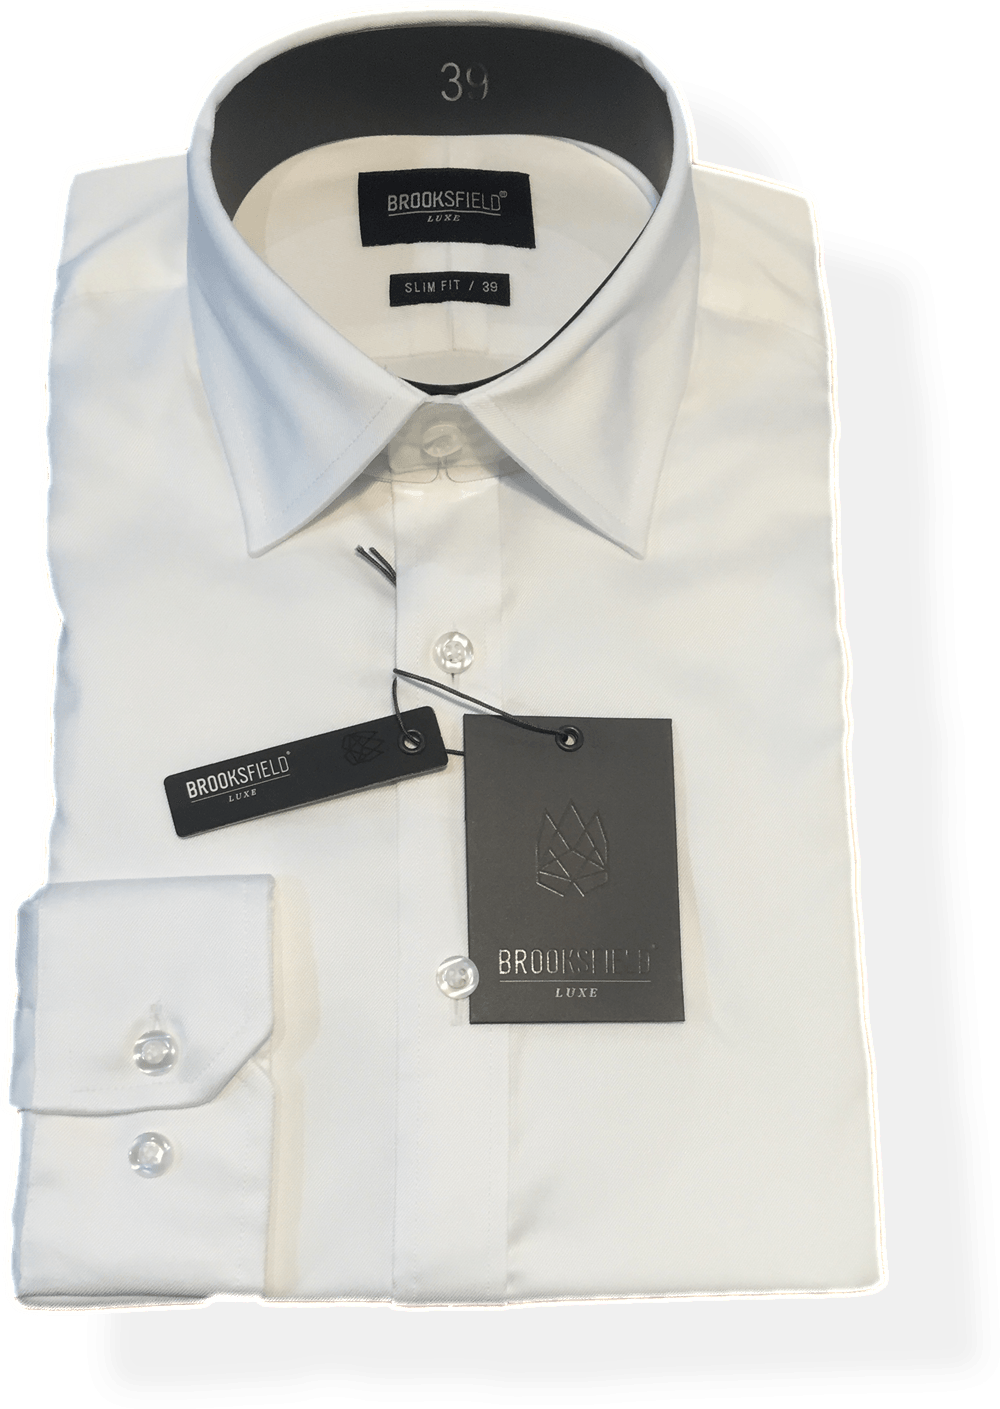 Brooksfield Luxe Business Shirt BFC939-White - Harry's for Menswear